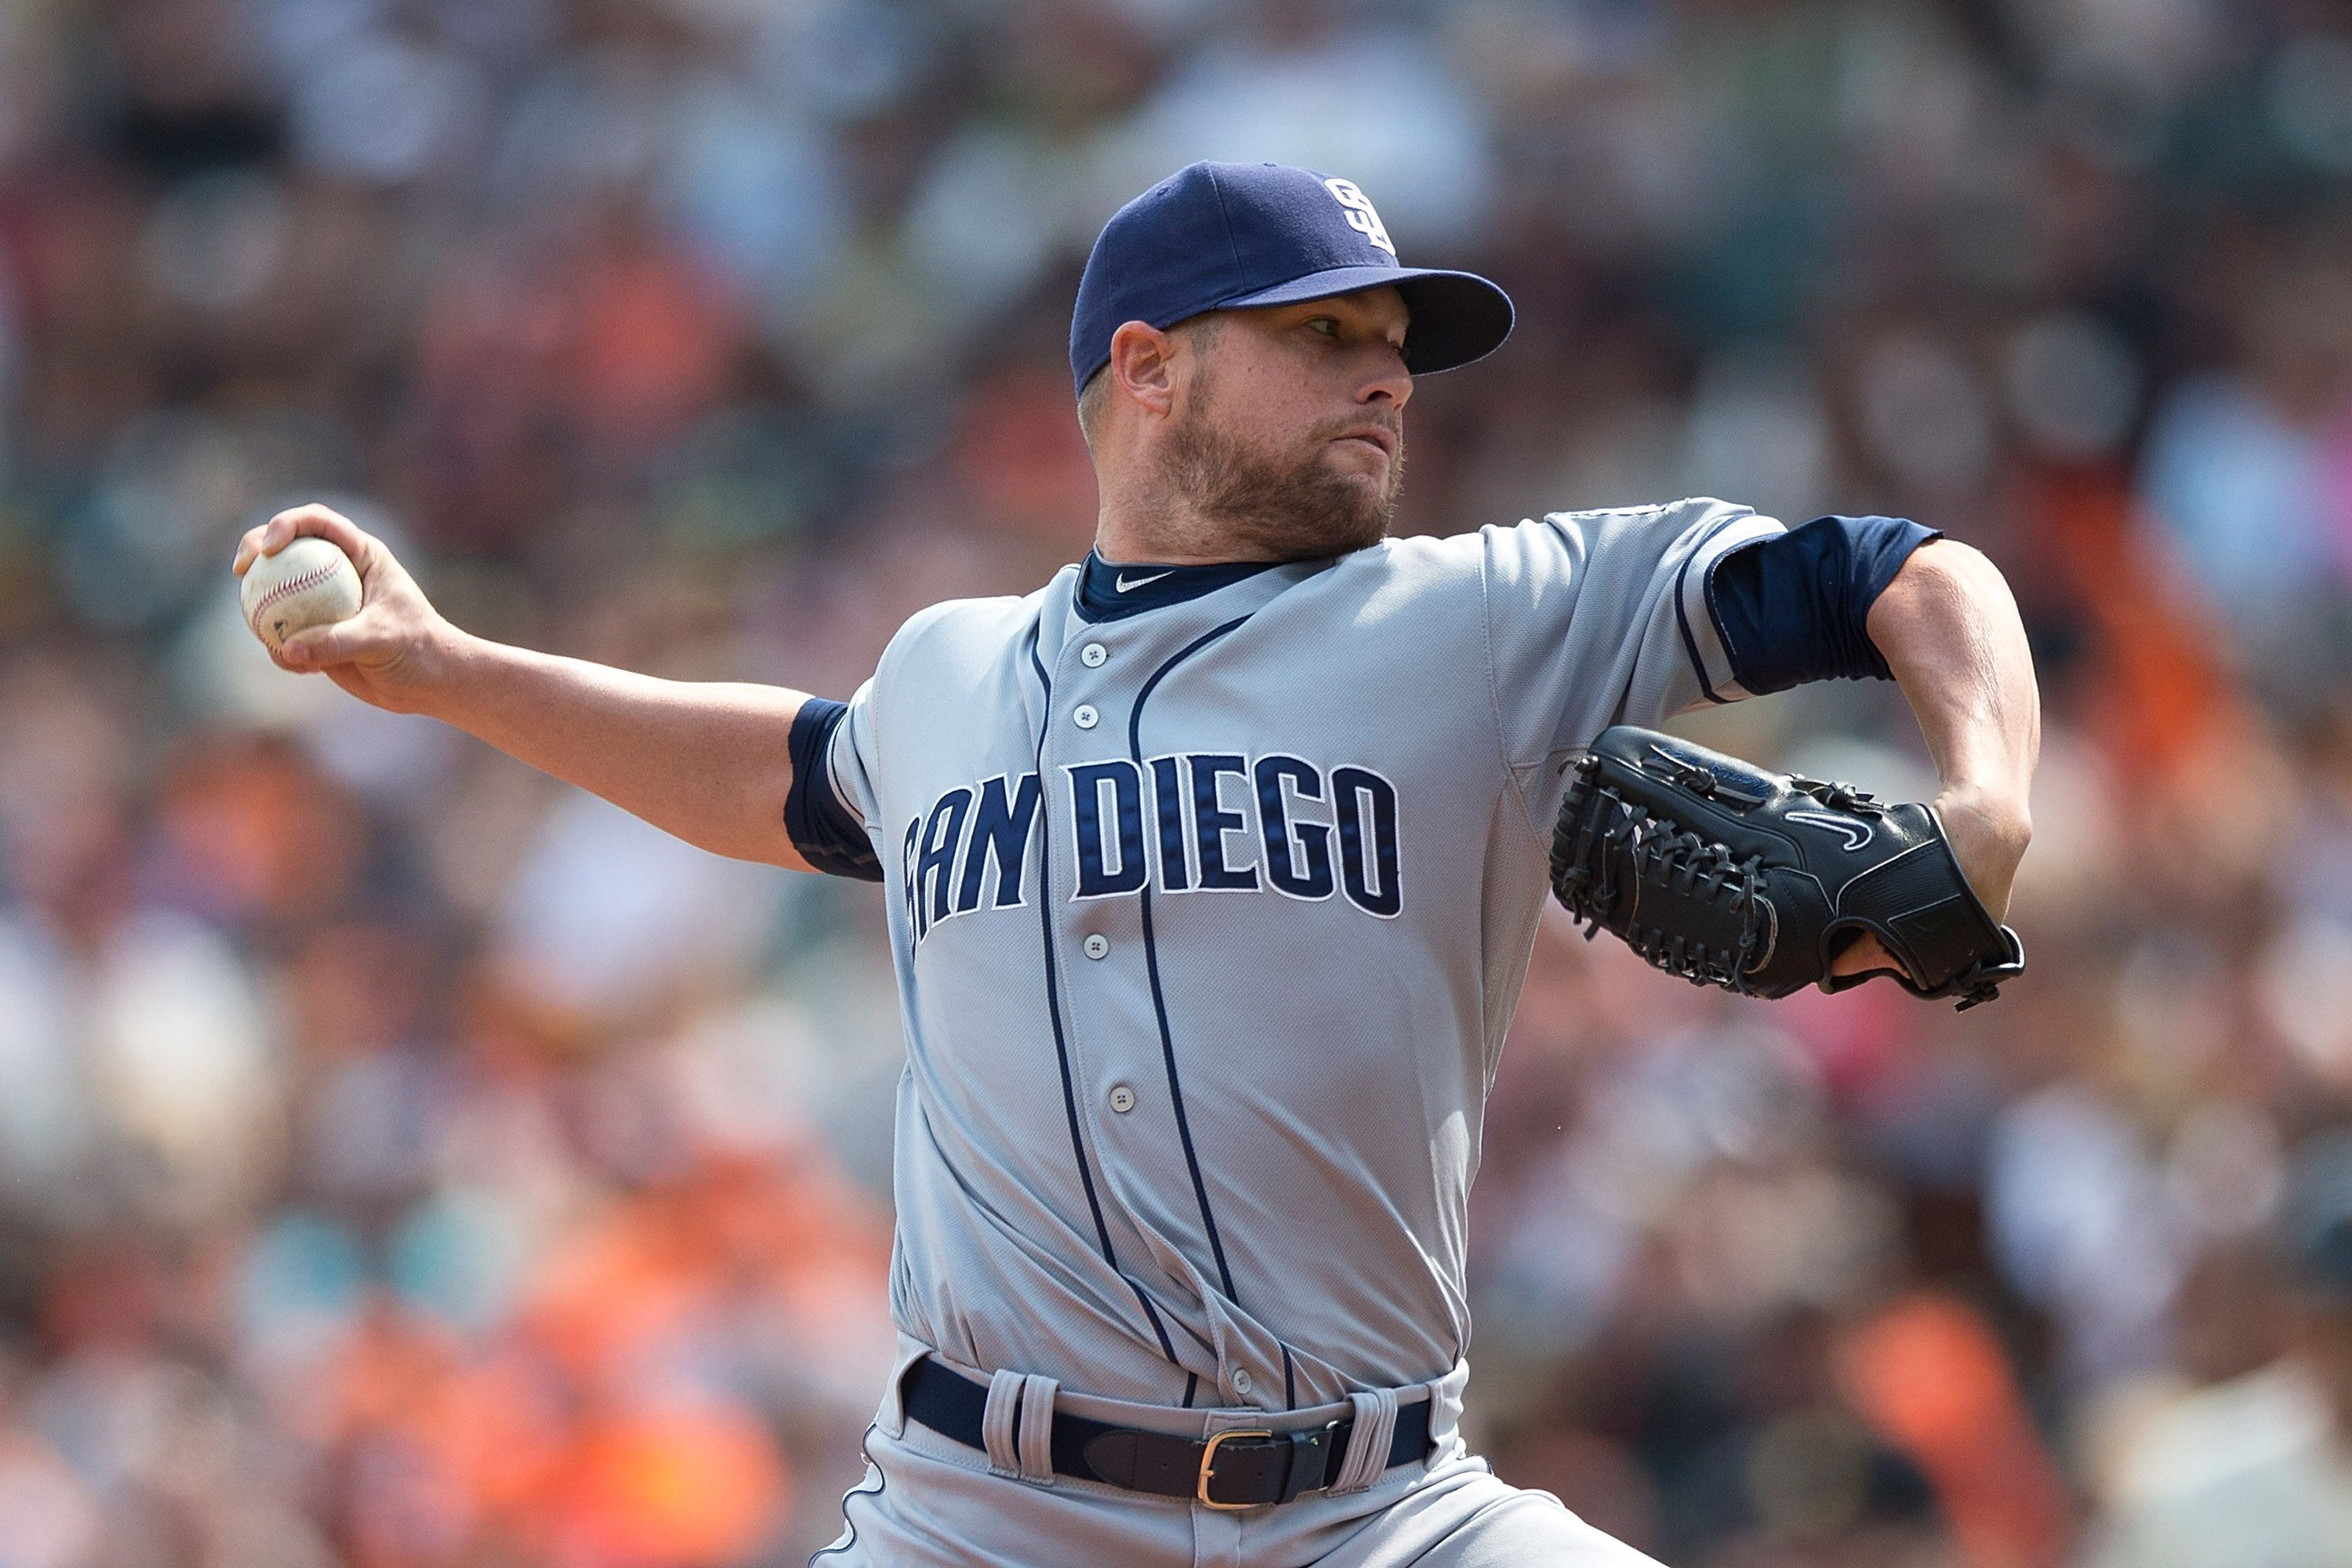 SAN FRANCISCO, CA - SEPTEMBER 13:  Bud Norris #20 of the San Diego Padres pitches against the San Francisco Giants during the fourth inning at AT&T Park on September 13, 2015 in San Francisco, California.  The San Francisco Giants defeated the San Diego Padres 10-3. (Photo by Jason O. Watson/Getty Images)